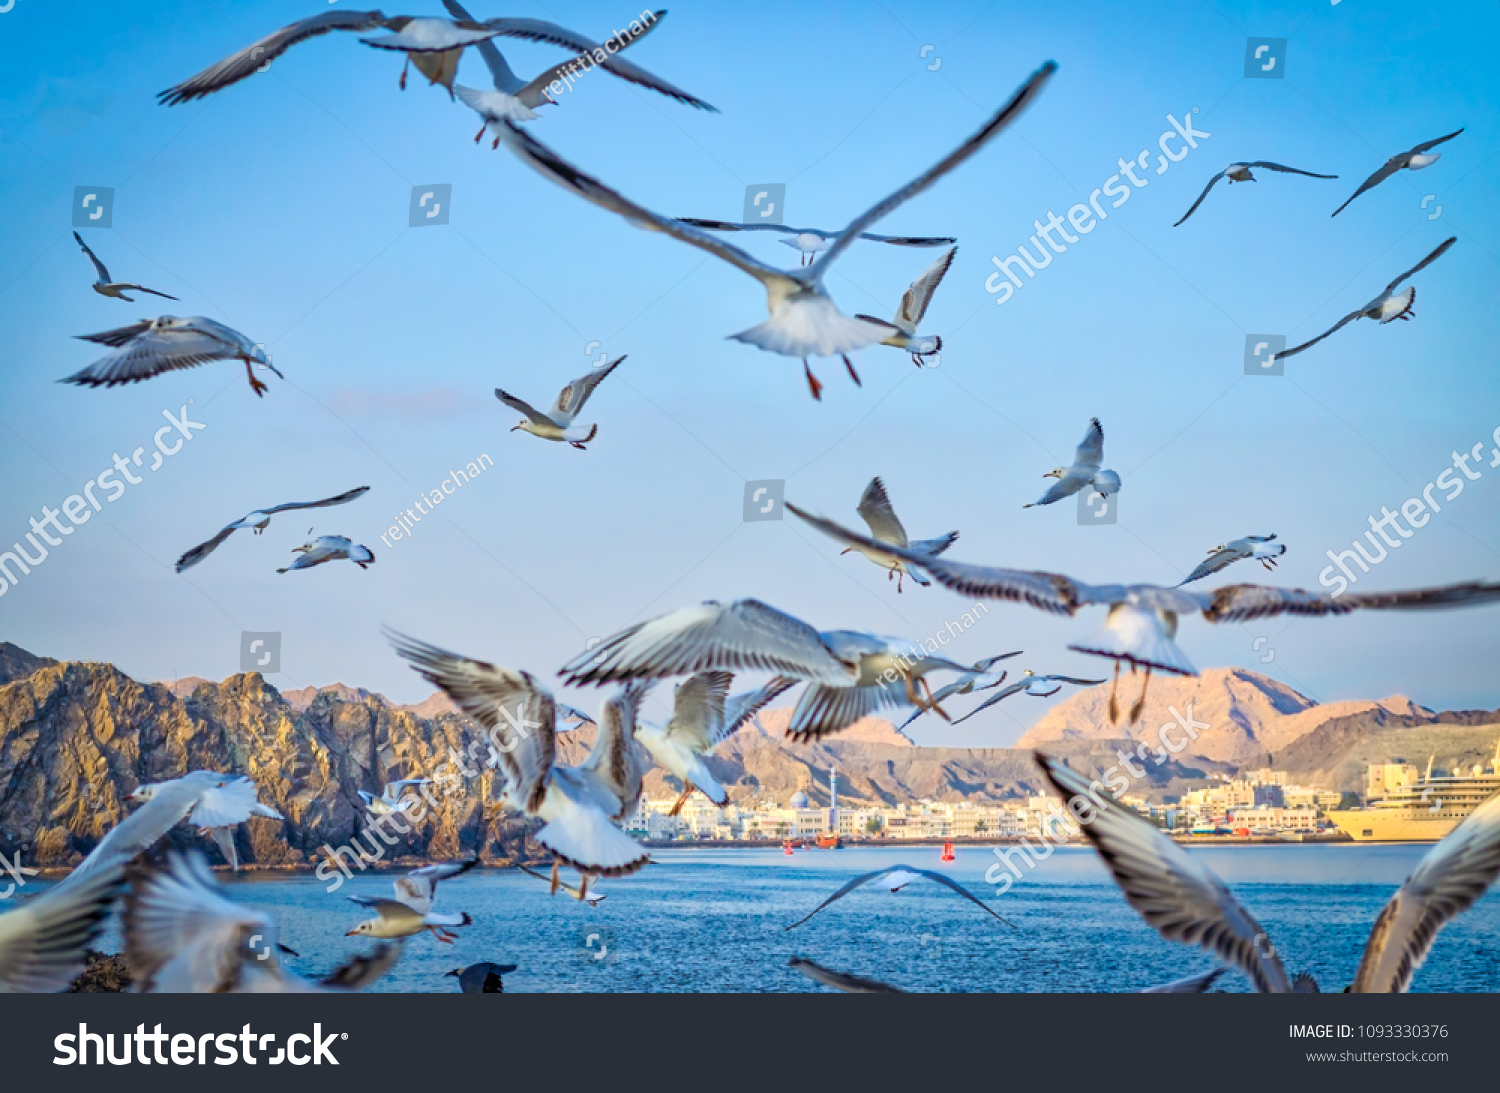 Flock of pigeons flying away to the sky with the background of Muscat skyline